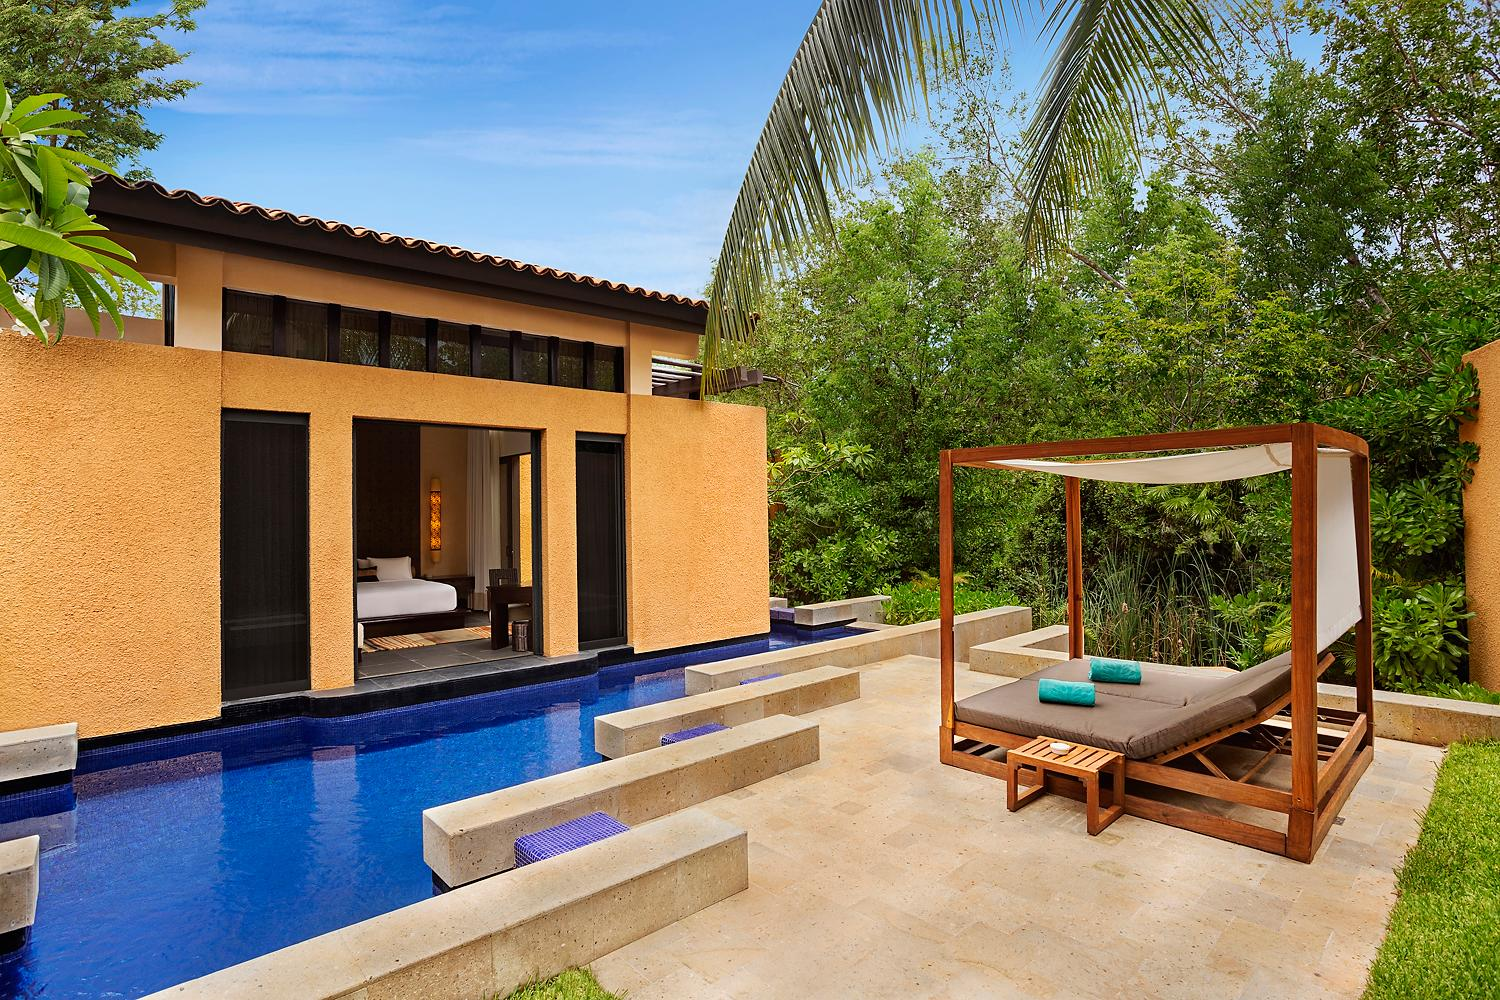 Bliss Pool Villa exterior